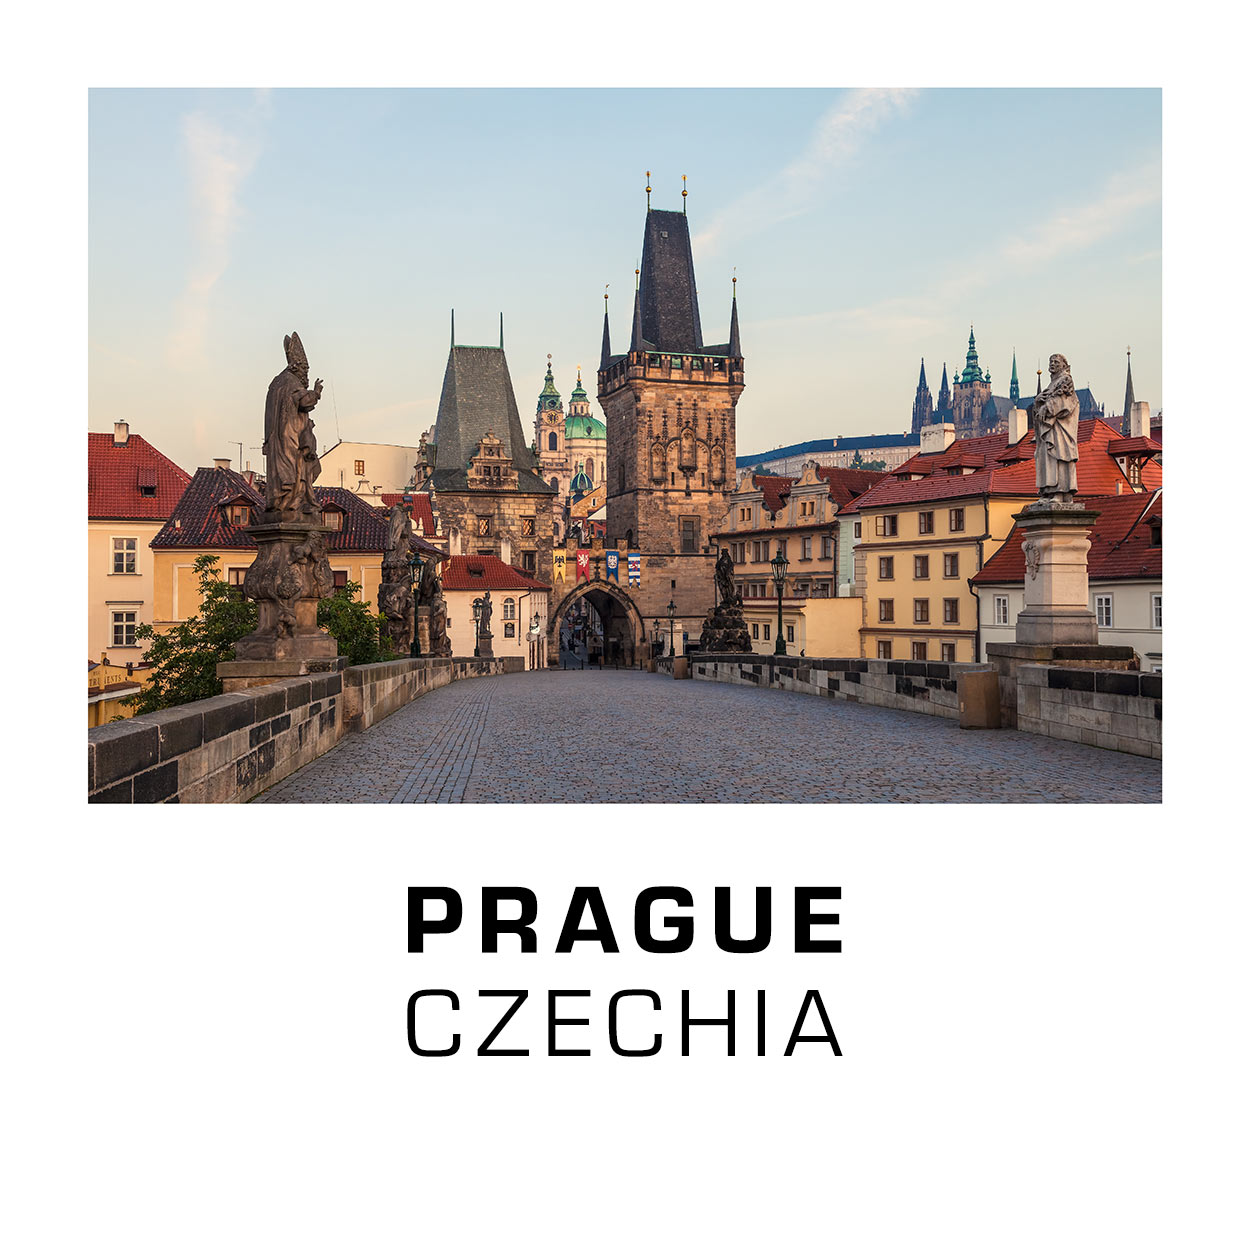 Prague, Czechia - Charles Bridge in the Early Morning Hours